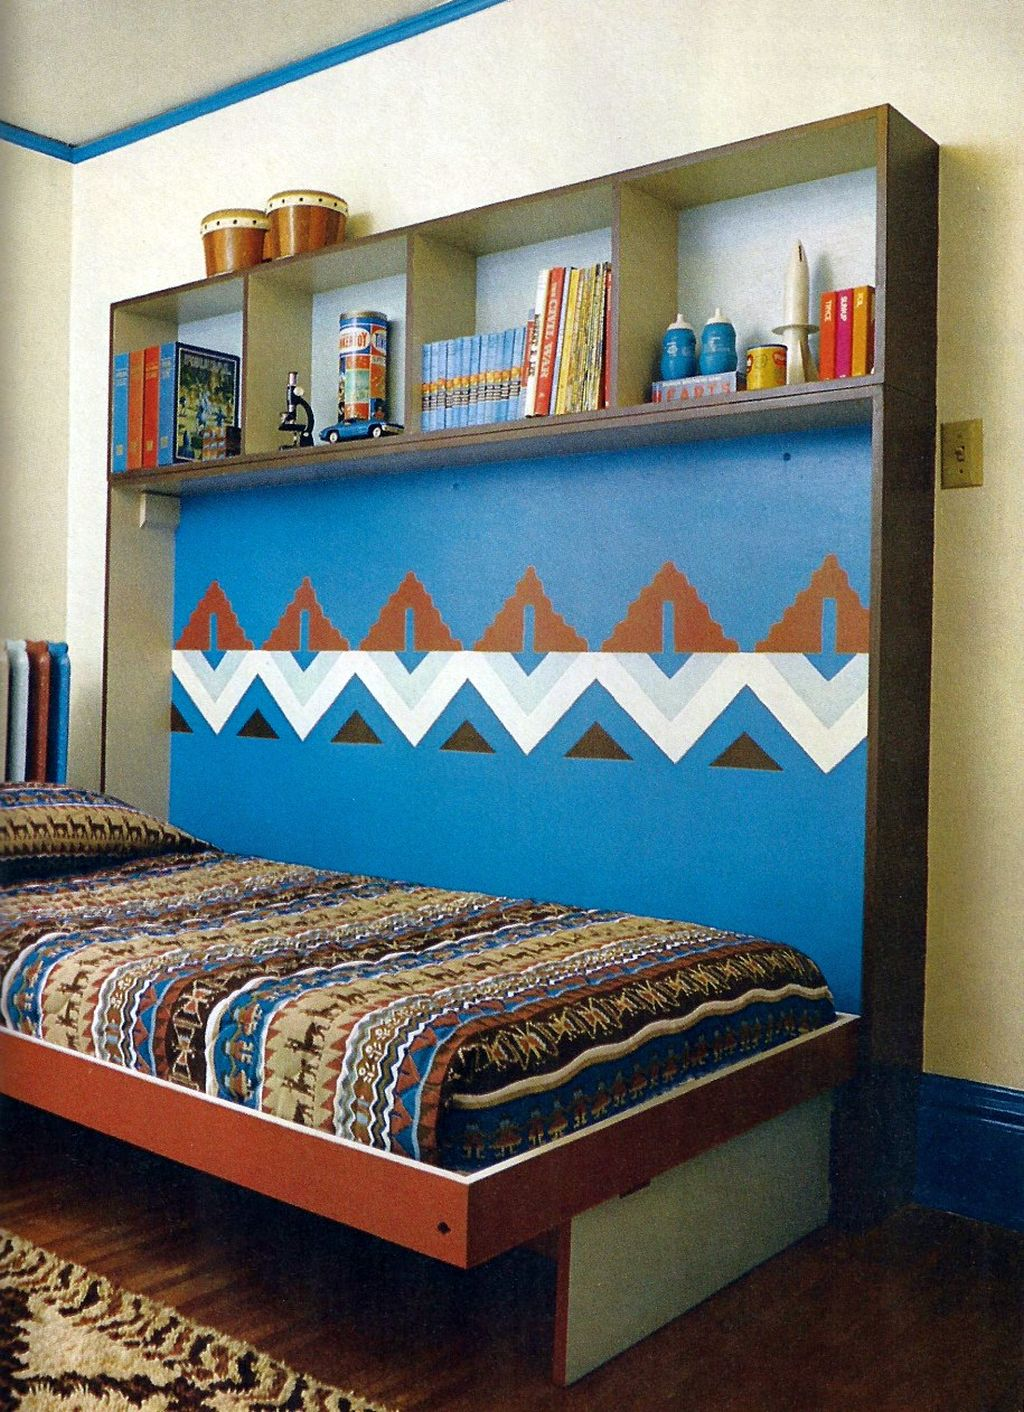 20 Space-Saving Murphy Bed Design Ideas for Small Rooms on Ideas For Small Rooms  id=22923